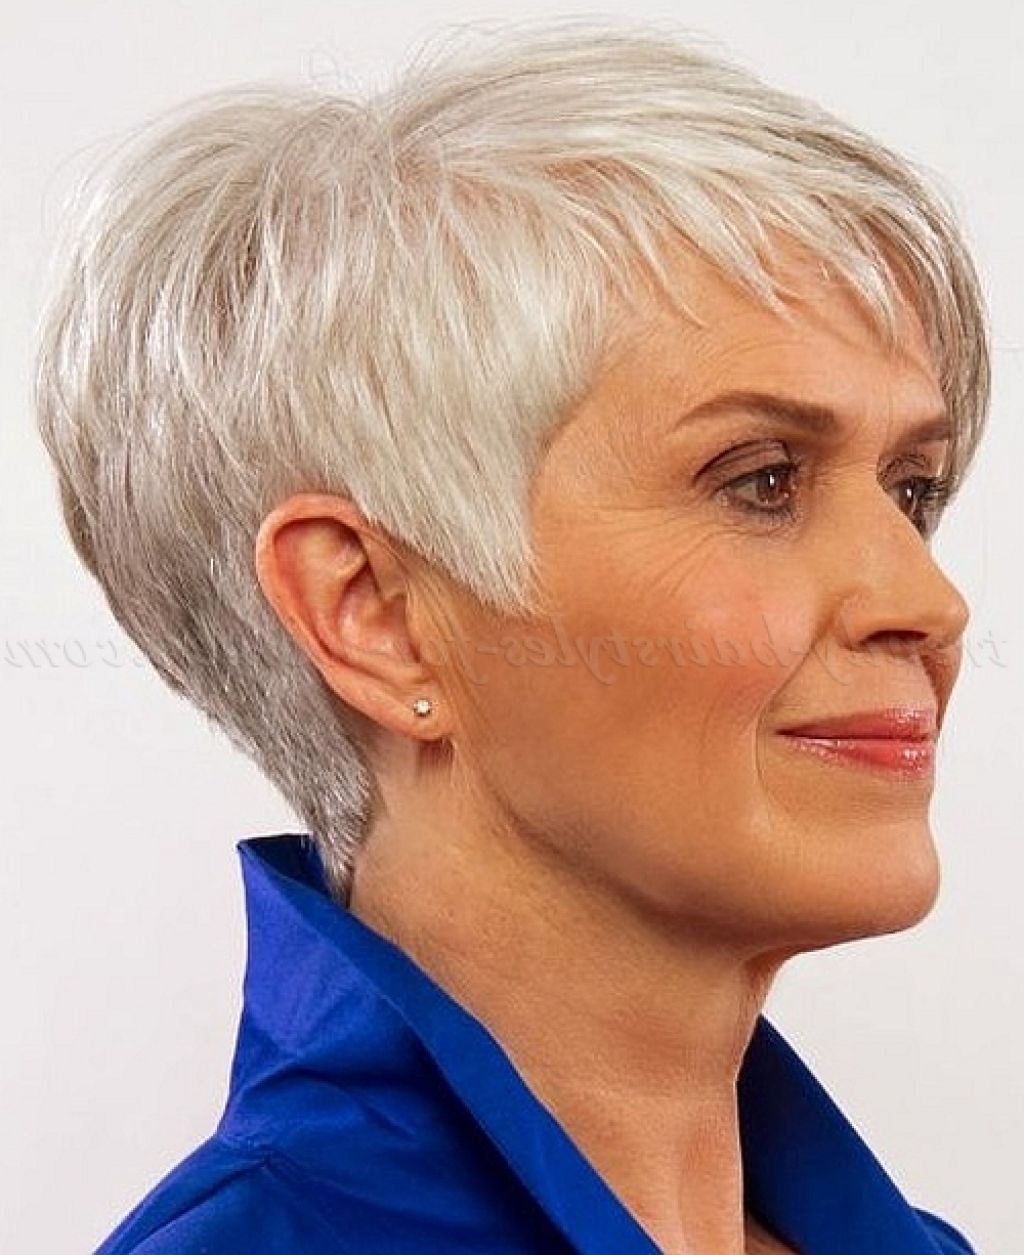 Short hairstyles trendy short hairstyles for women - 10 Easy Short Hairstyles For Women Over 60 Women Hairstyle Trendy